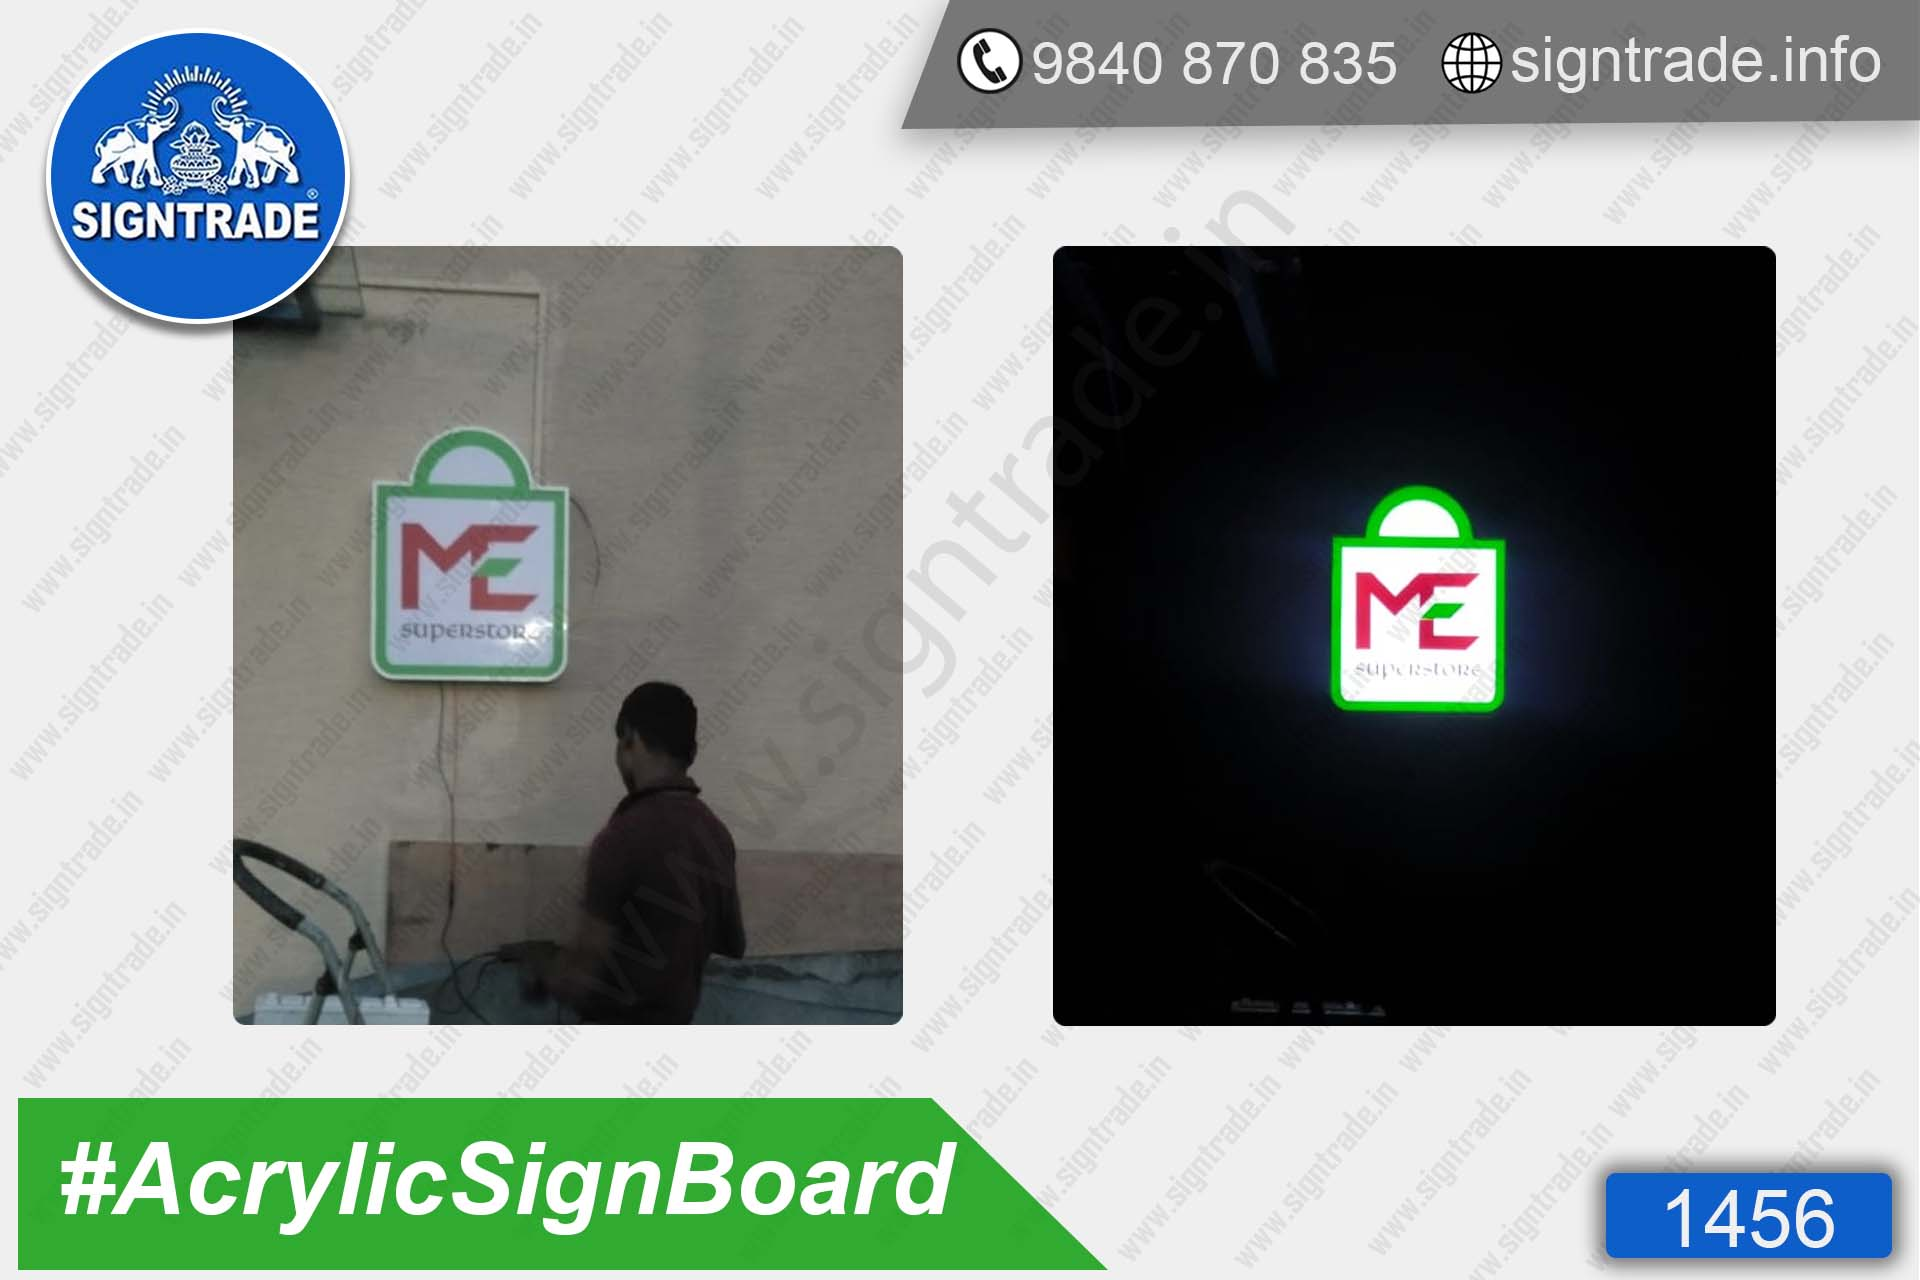 ME Superstore - Acrylic Sign Board